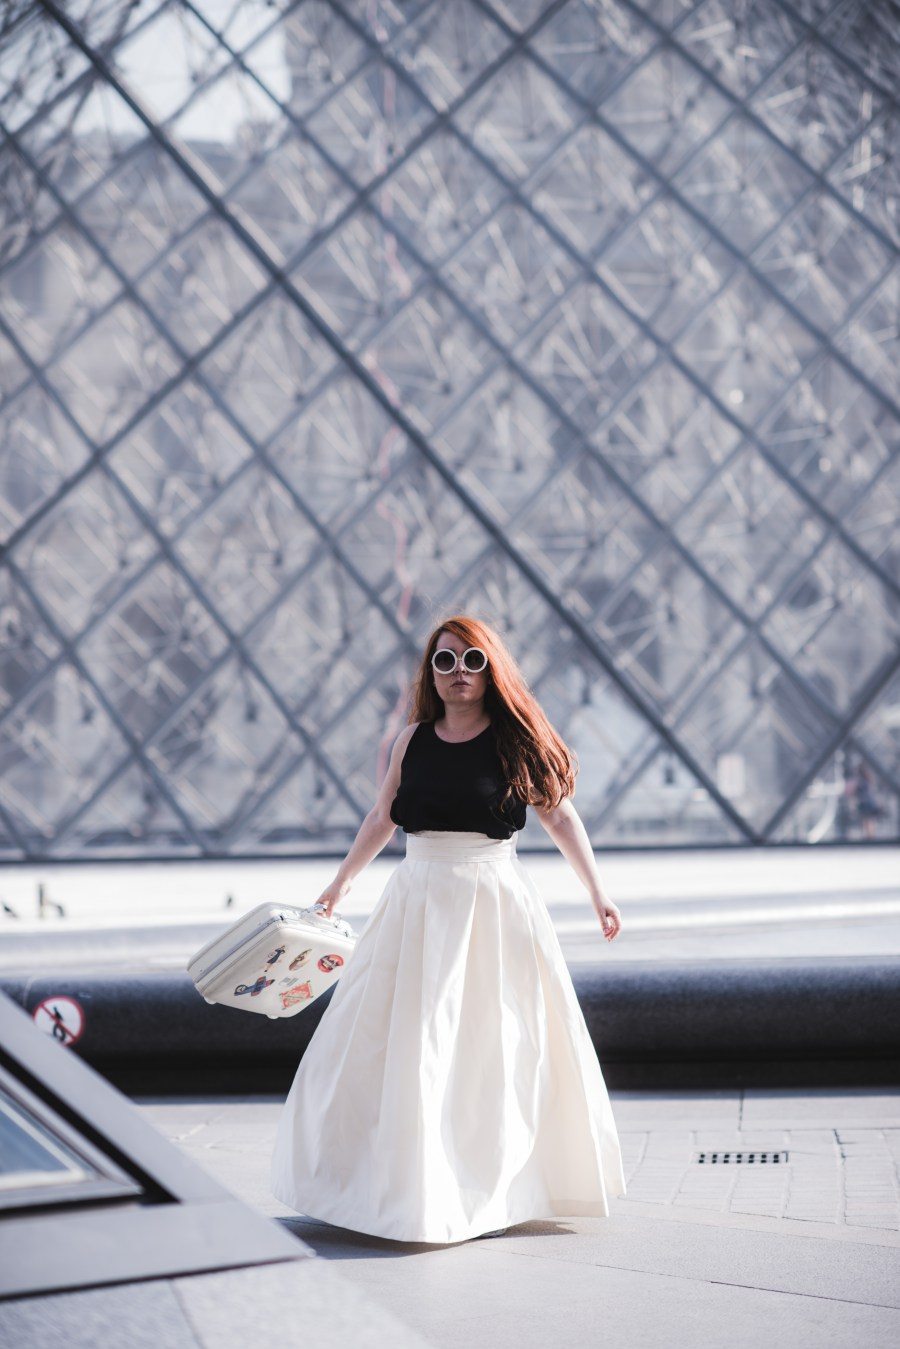 Once she told me, that is the place! - my home away from home, or actually, my home, Paris! Location: Louvre pyramid I.M. Pei design Outfit designed by: First-Class Belongings with fabrics from Mood NyC Photographer: Nathan Ishar